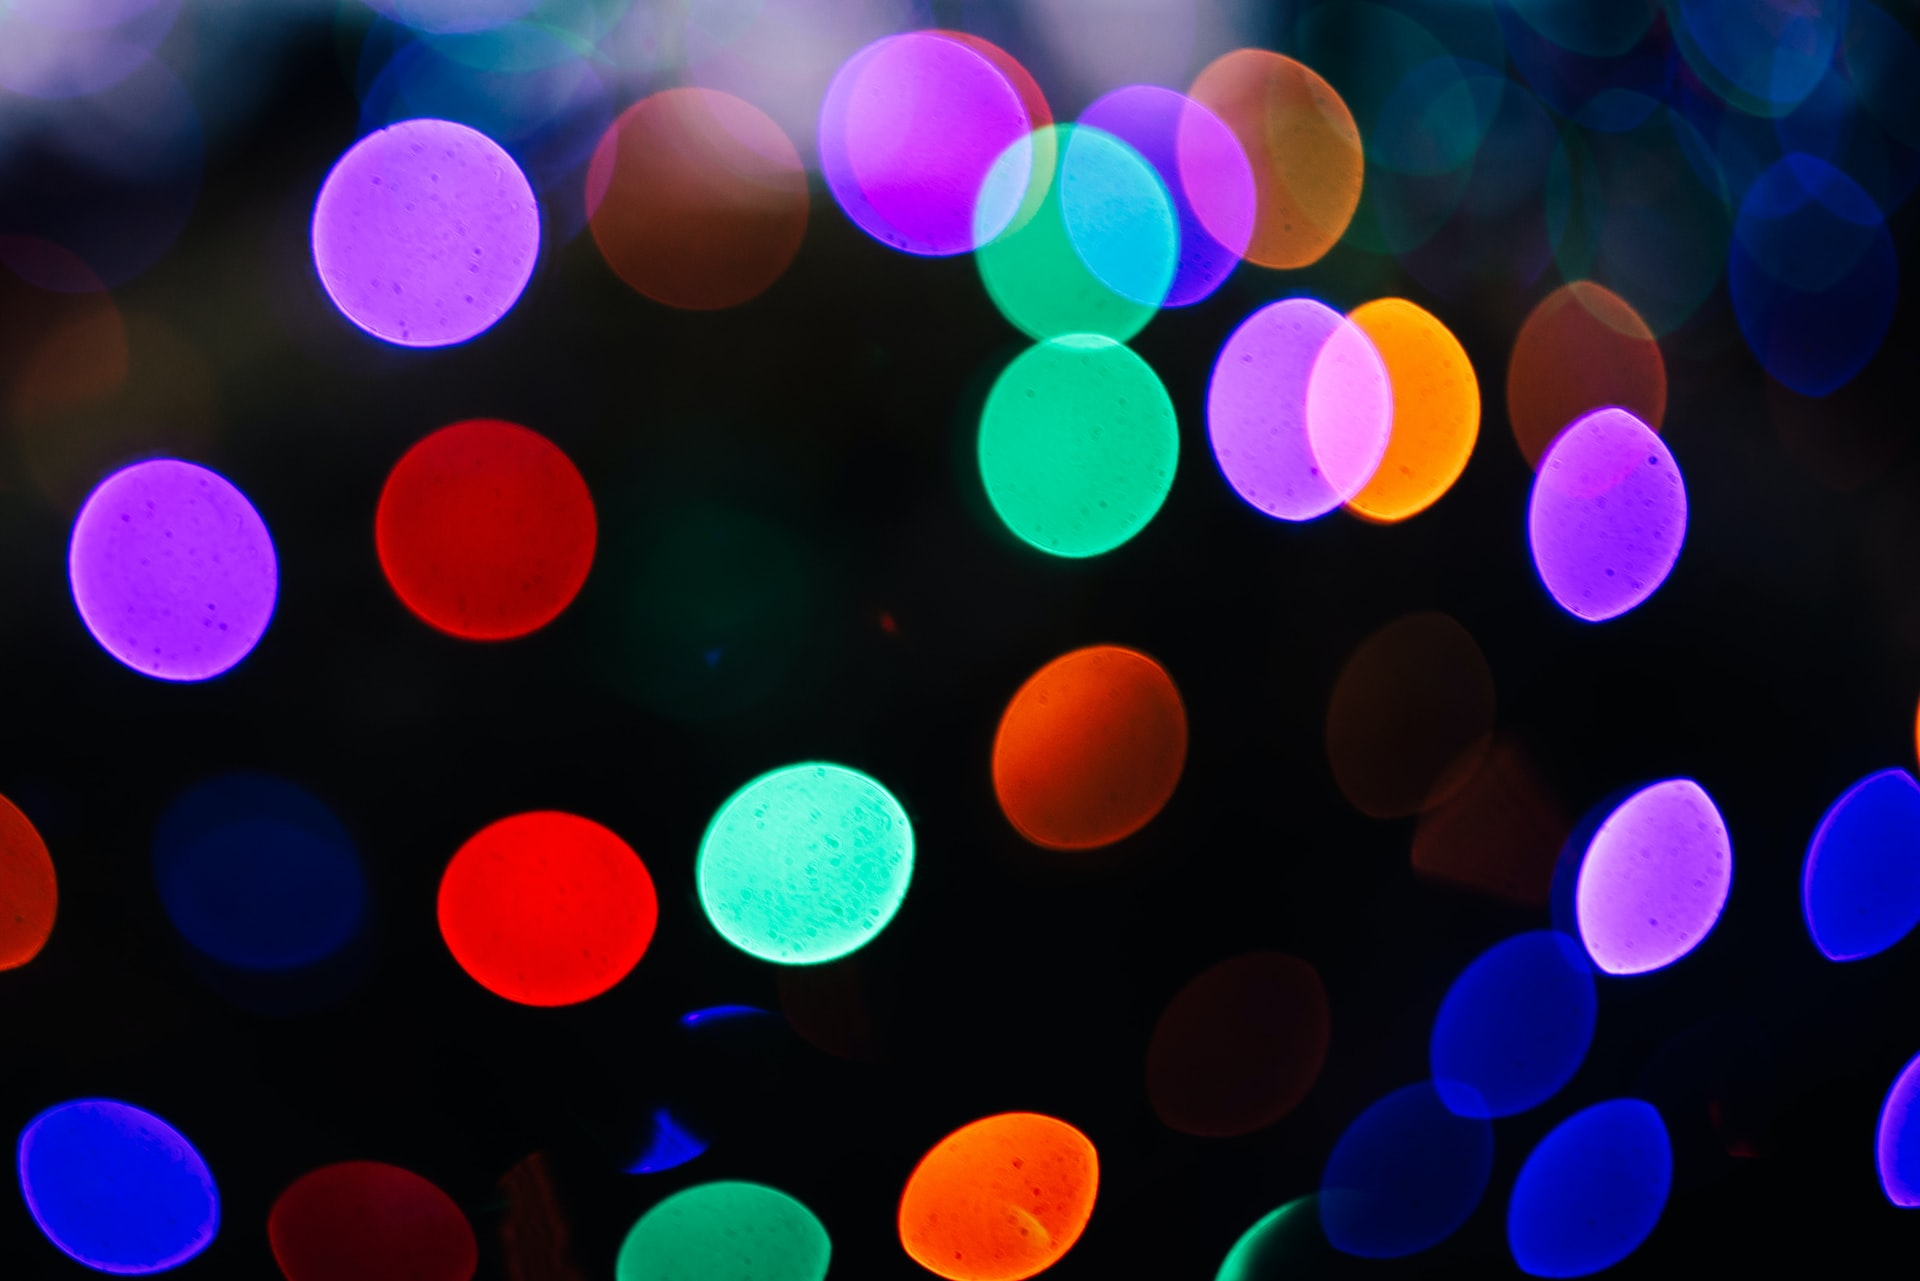 Photograph of blurry, colourful dots.